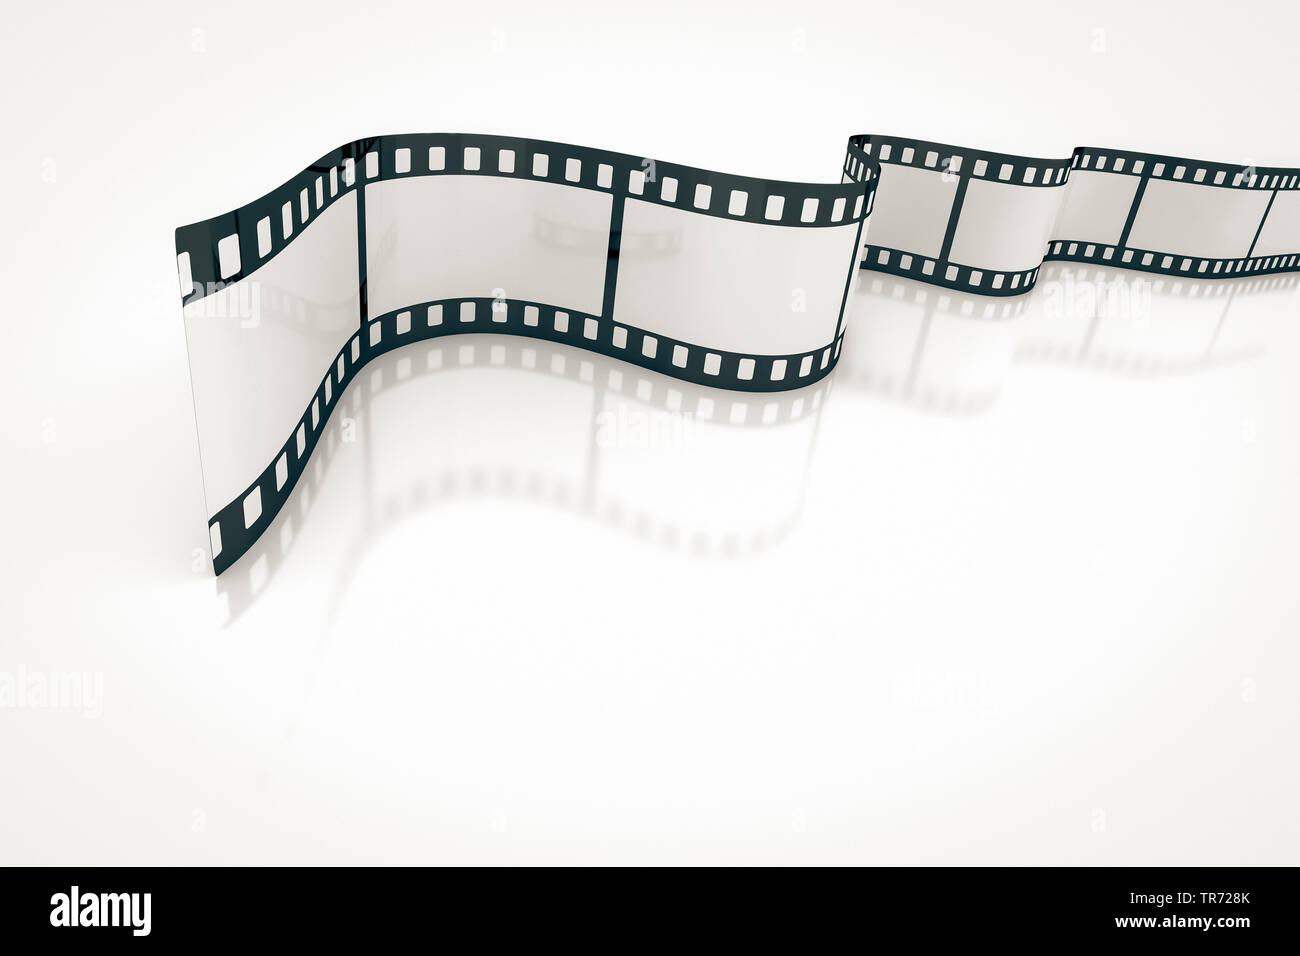 3D computer graphic, symbolic blank film reel against white blackground Stock Photo